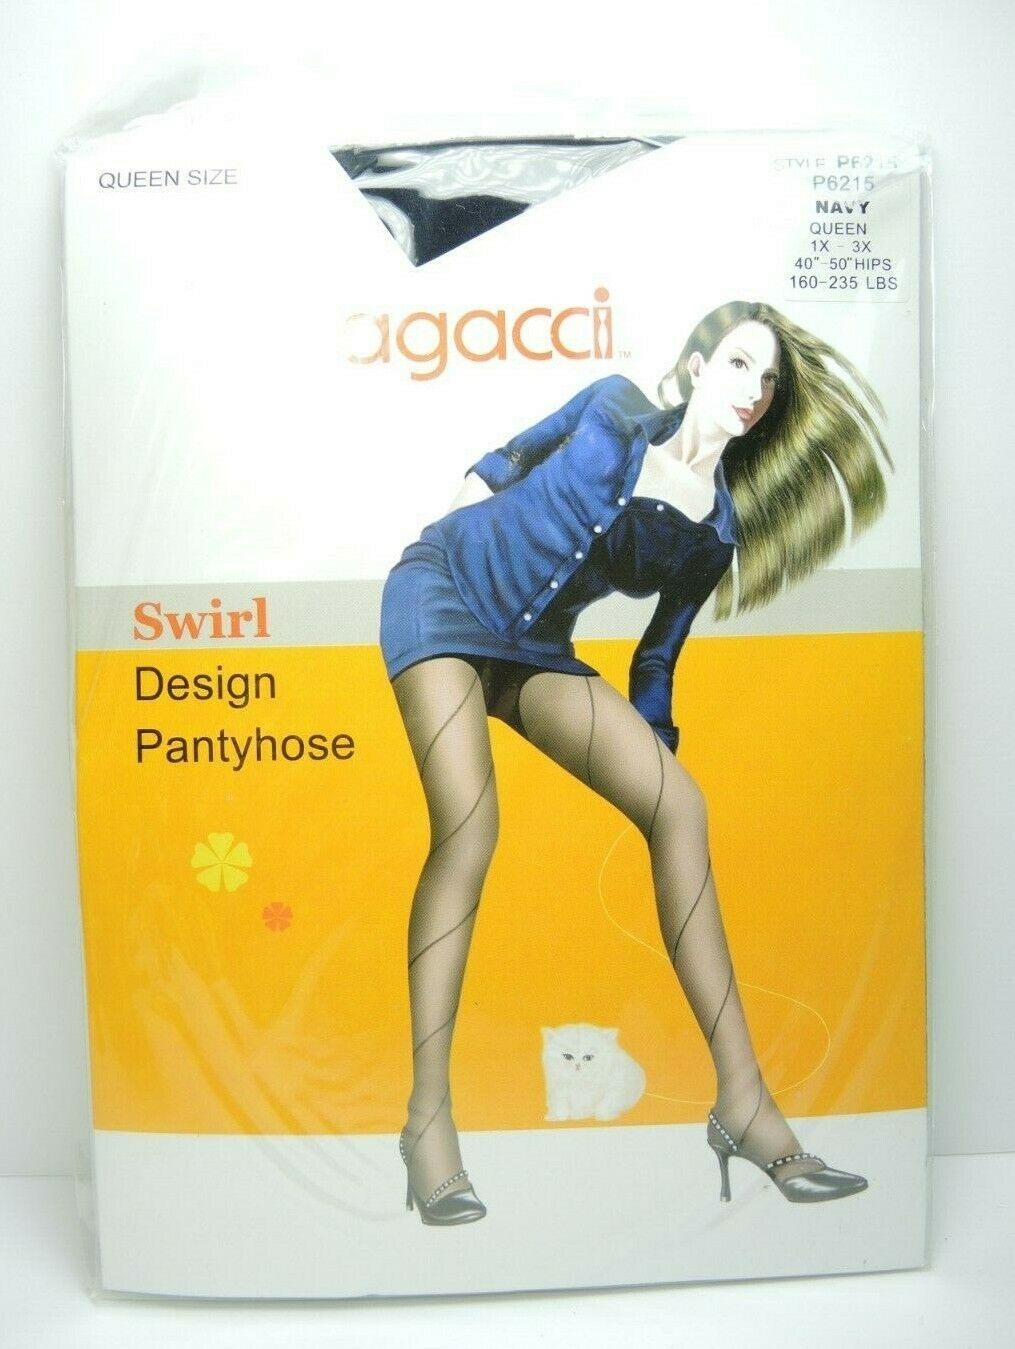 NEW Agacci Women's Pantyhose Stockings Sheer Swirl Design Navy Queen Size 1X-3X - fazoom